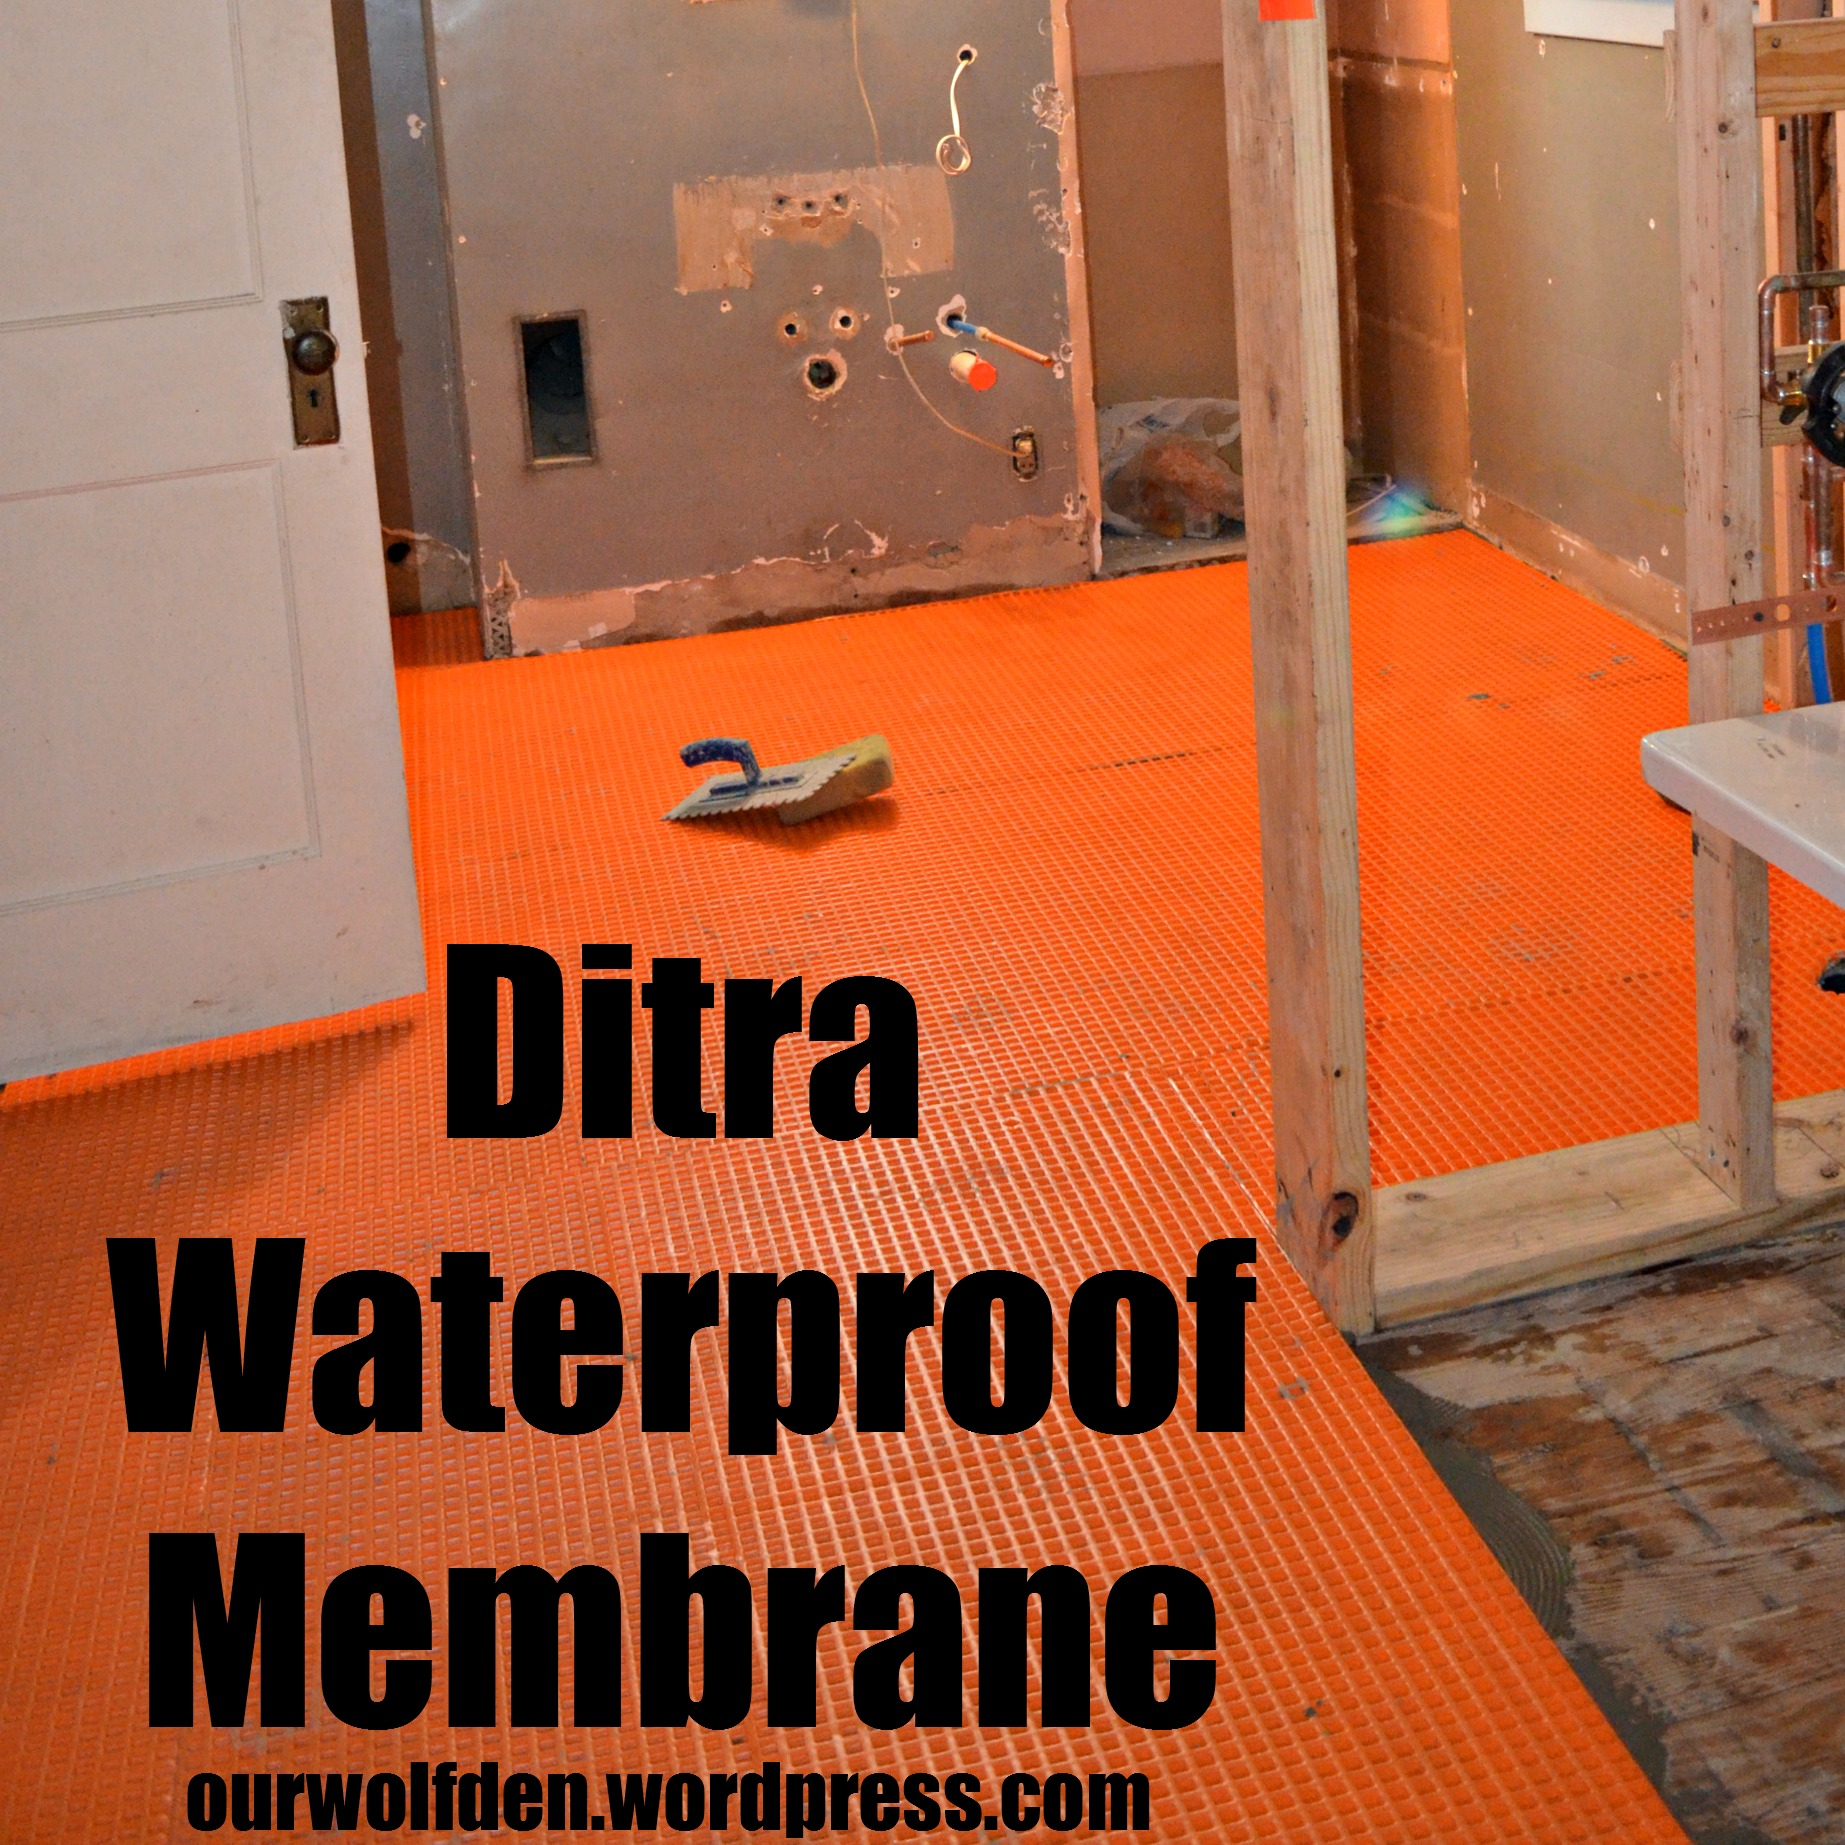 ditra waterproof membrane our wolf den